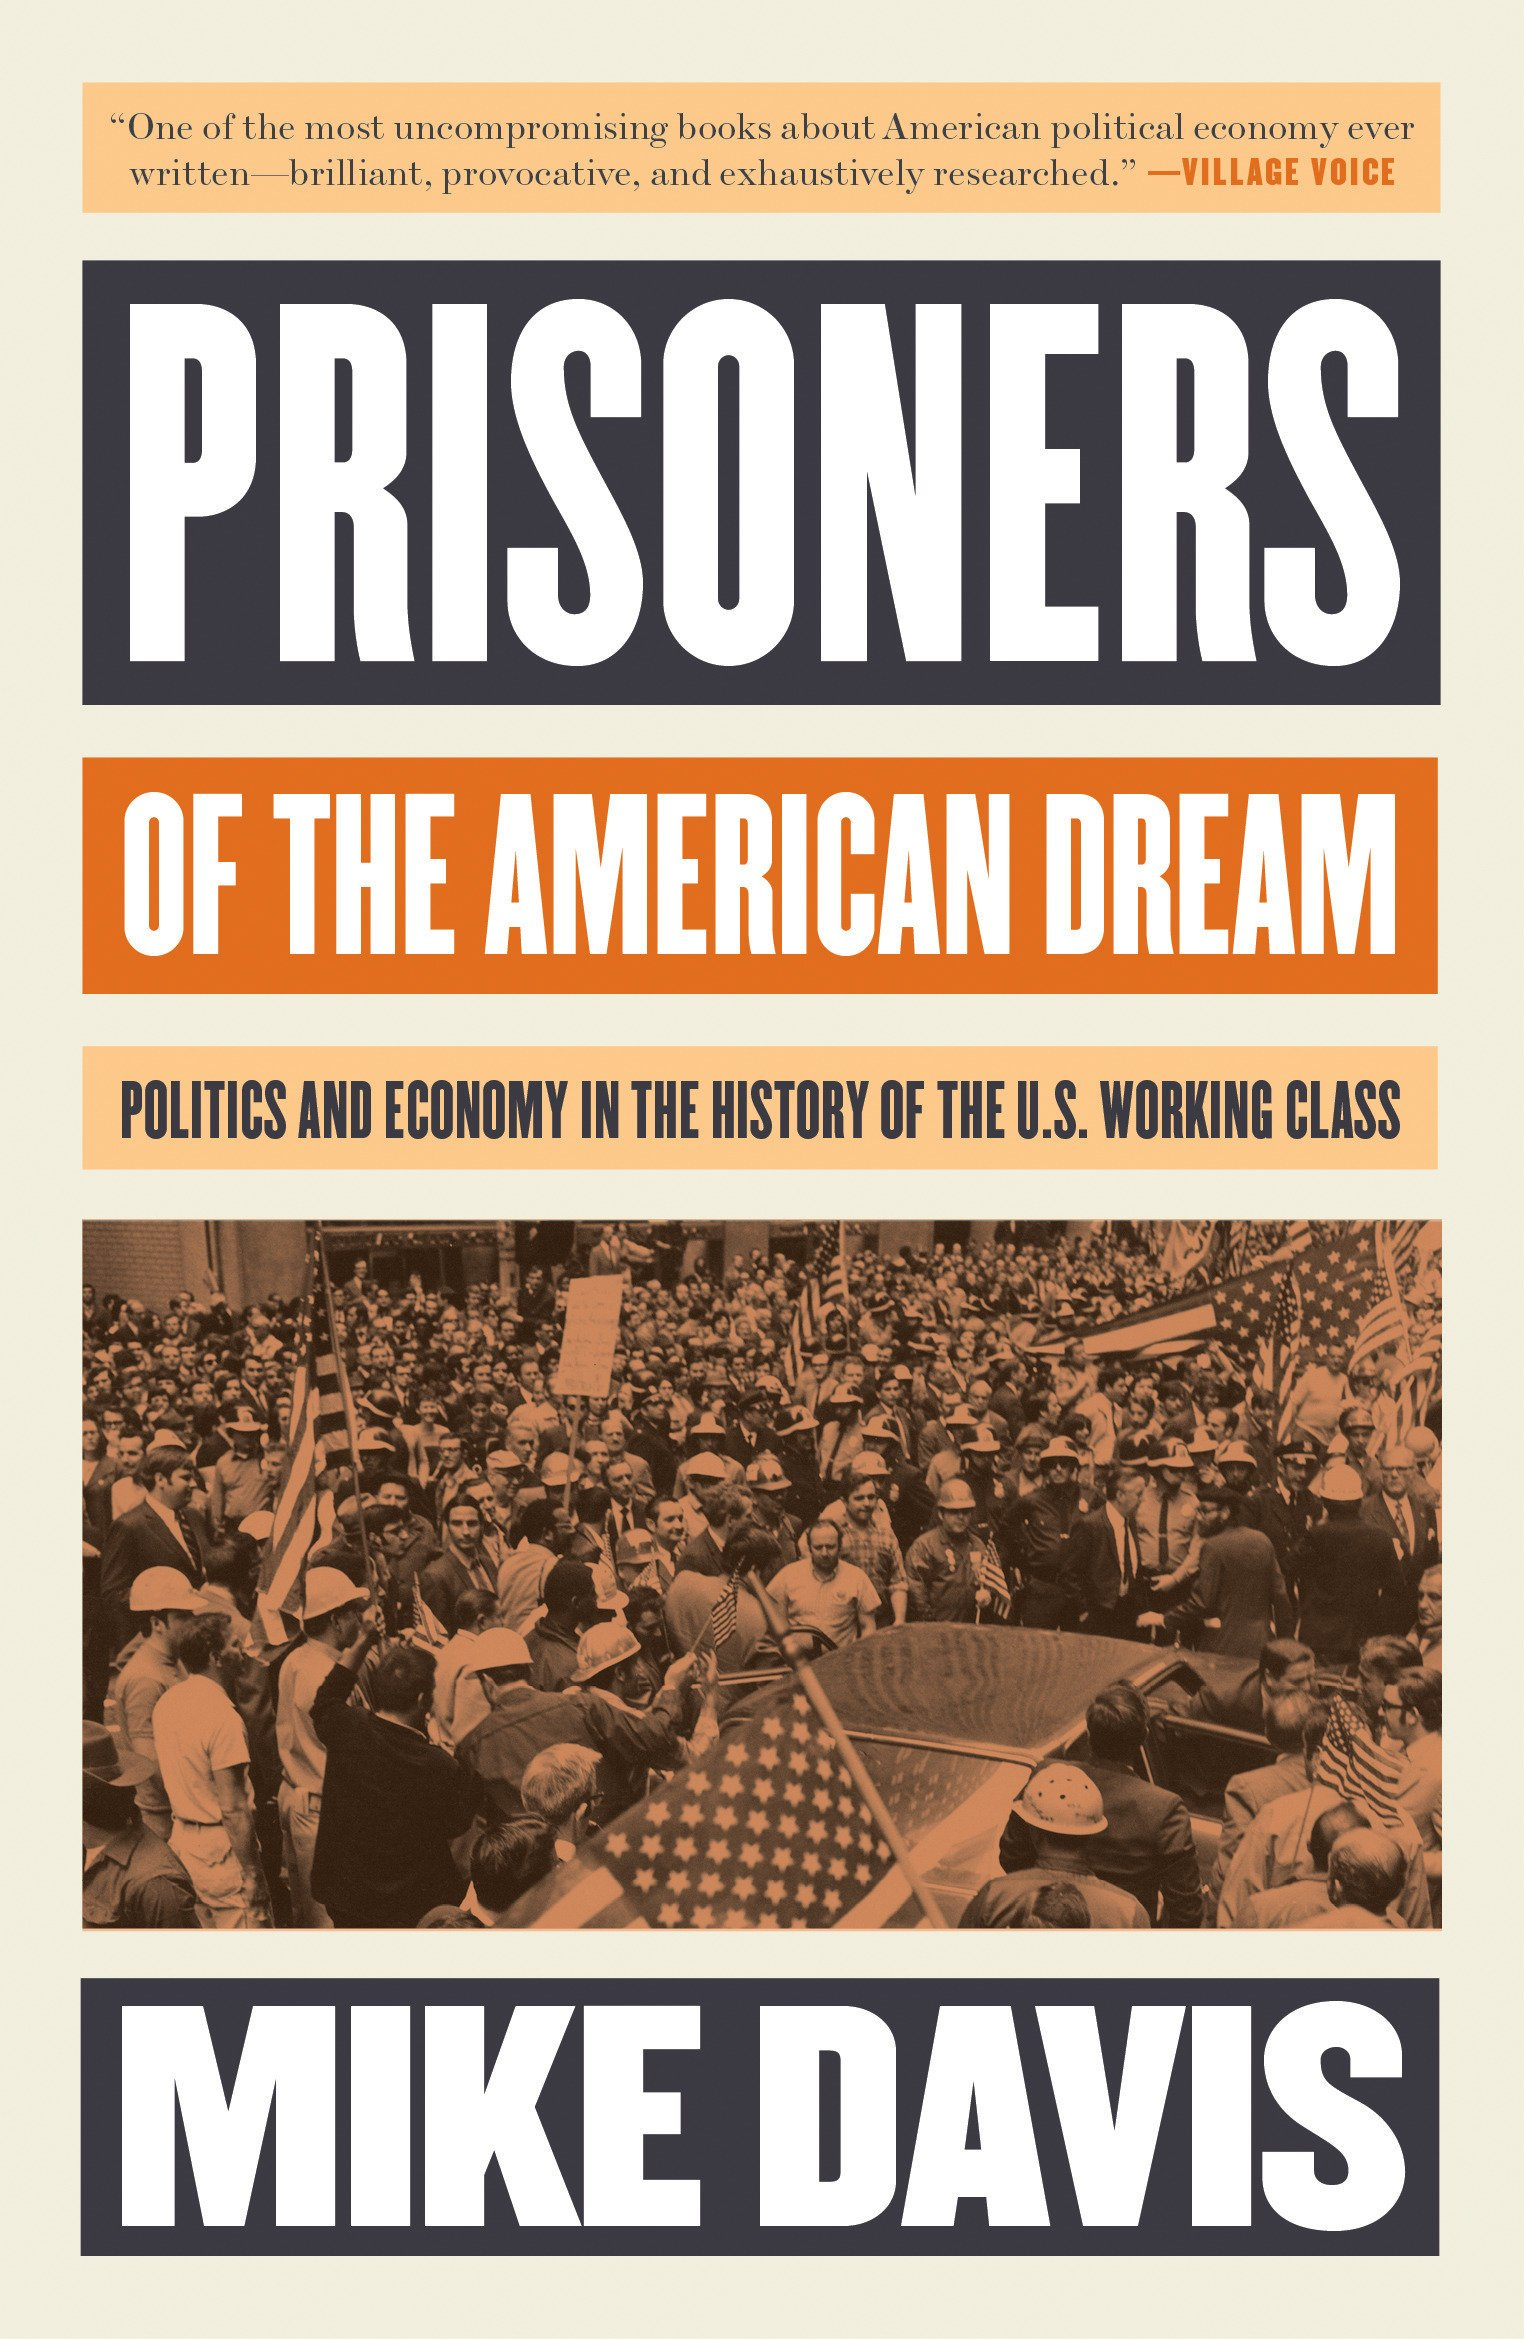 Reading Commentary - Prisoners of the American Dream: Politics and Economy of the U.S. Working Class by Mike Davis (1986)